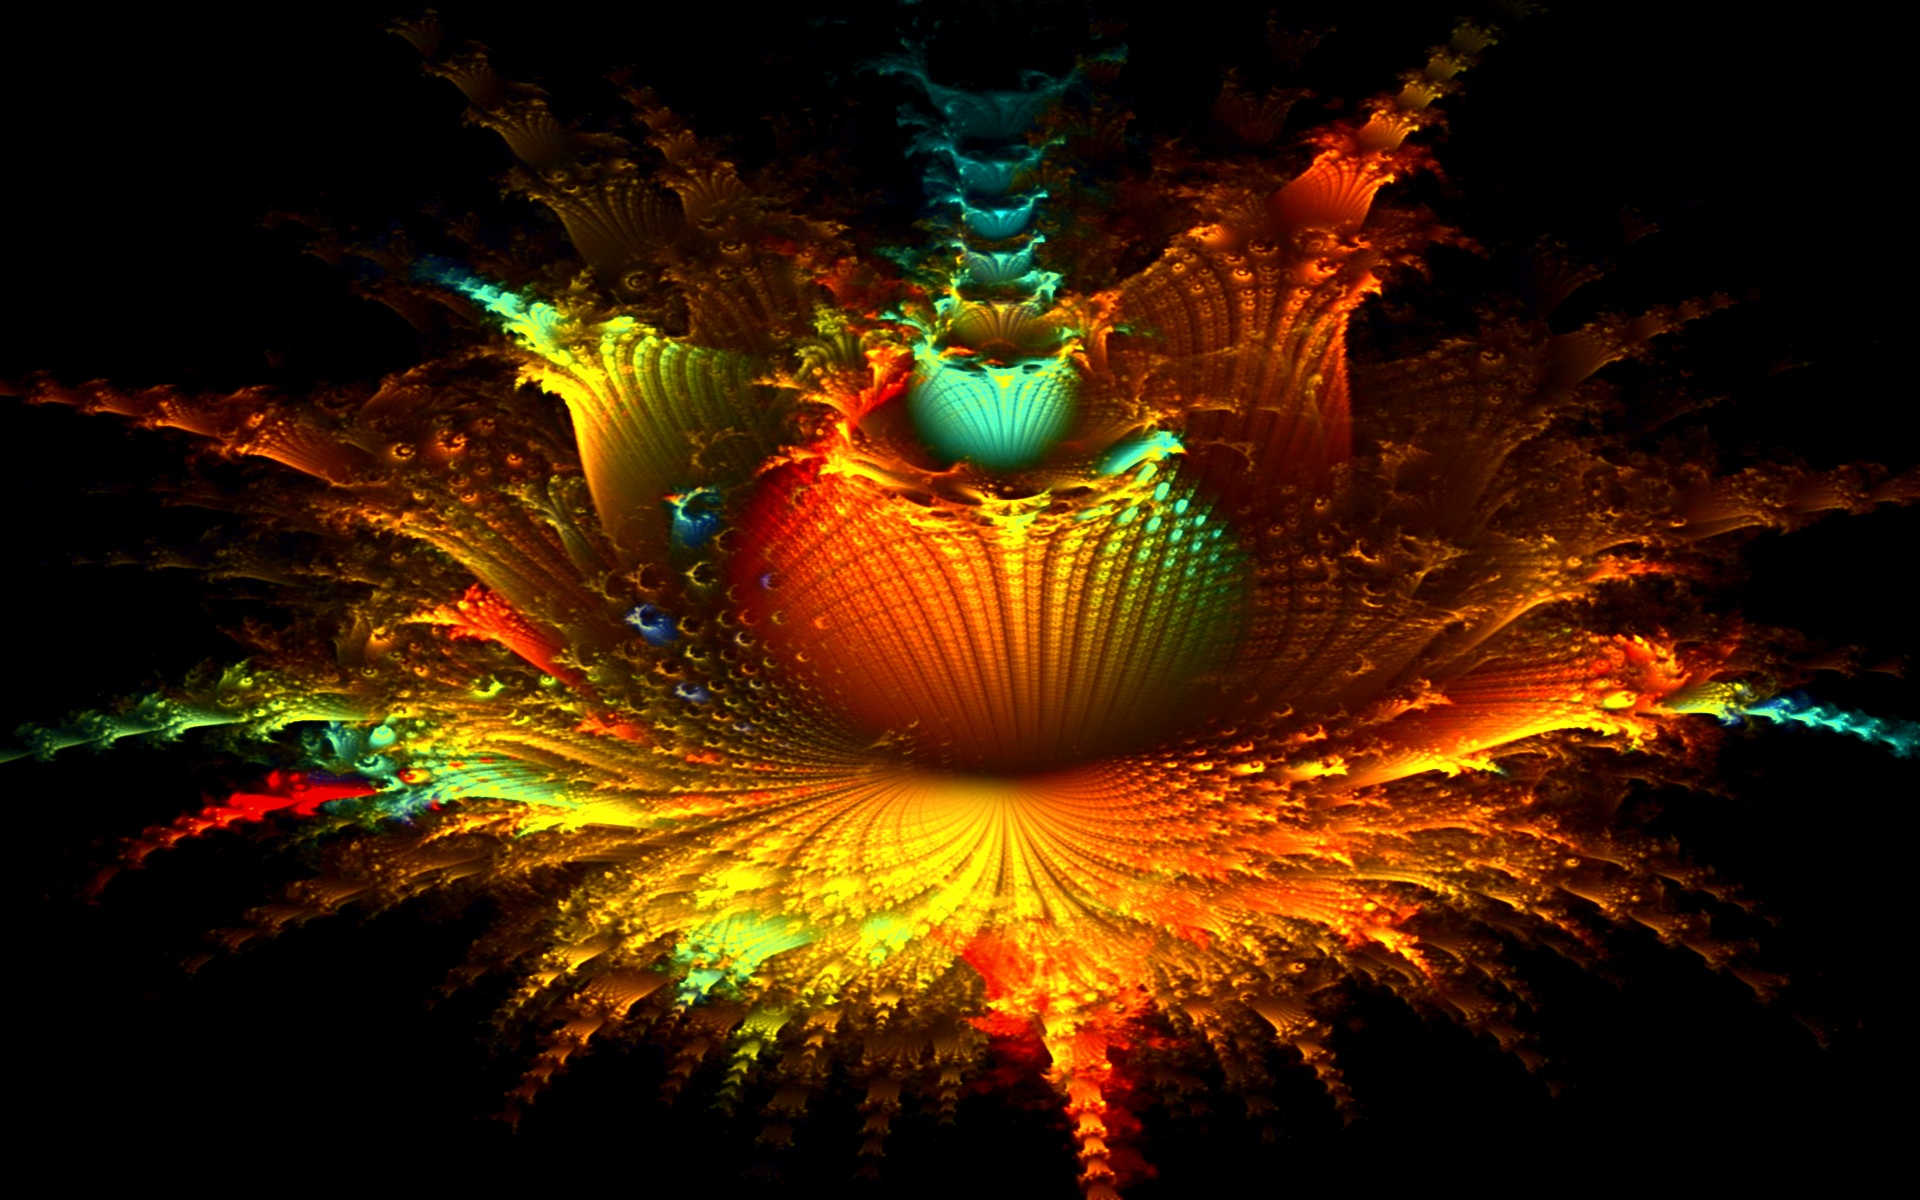 Free Hd Wallpapers Widescreen Monitor Artworks Stock: Fractal Floral Explosion Wallpapers